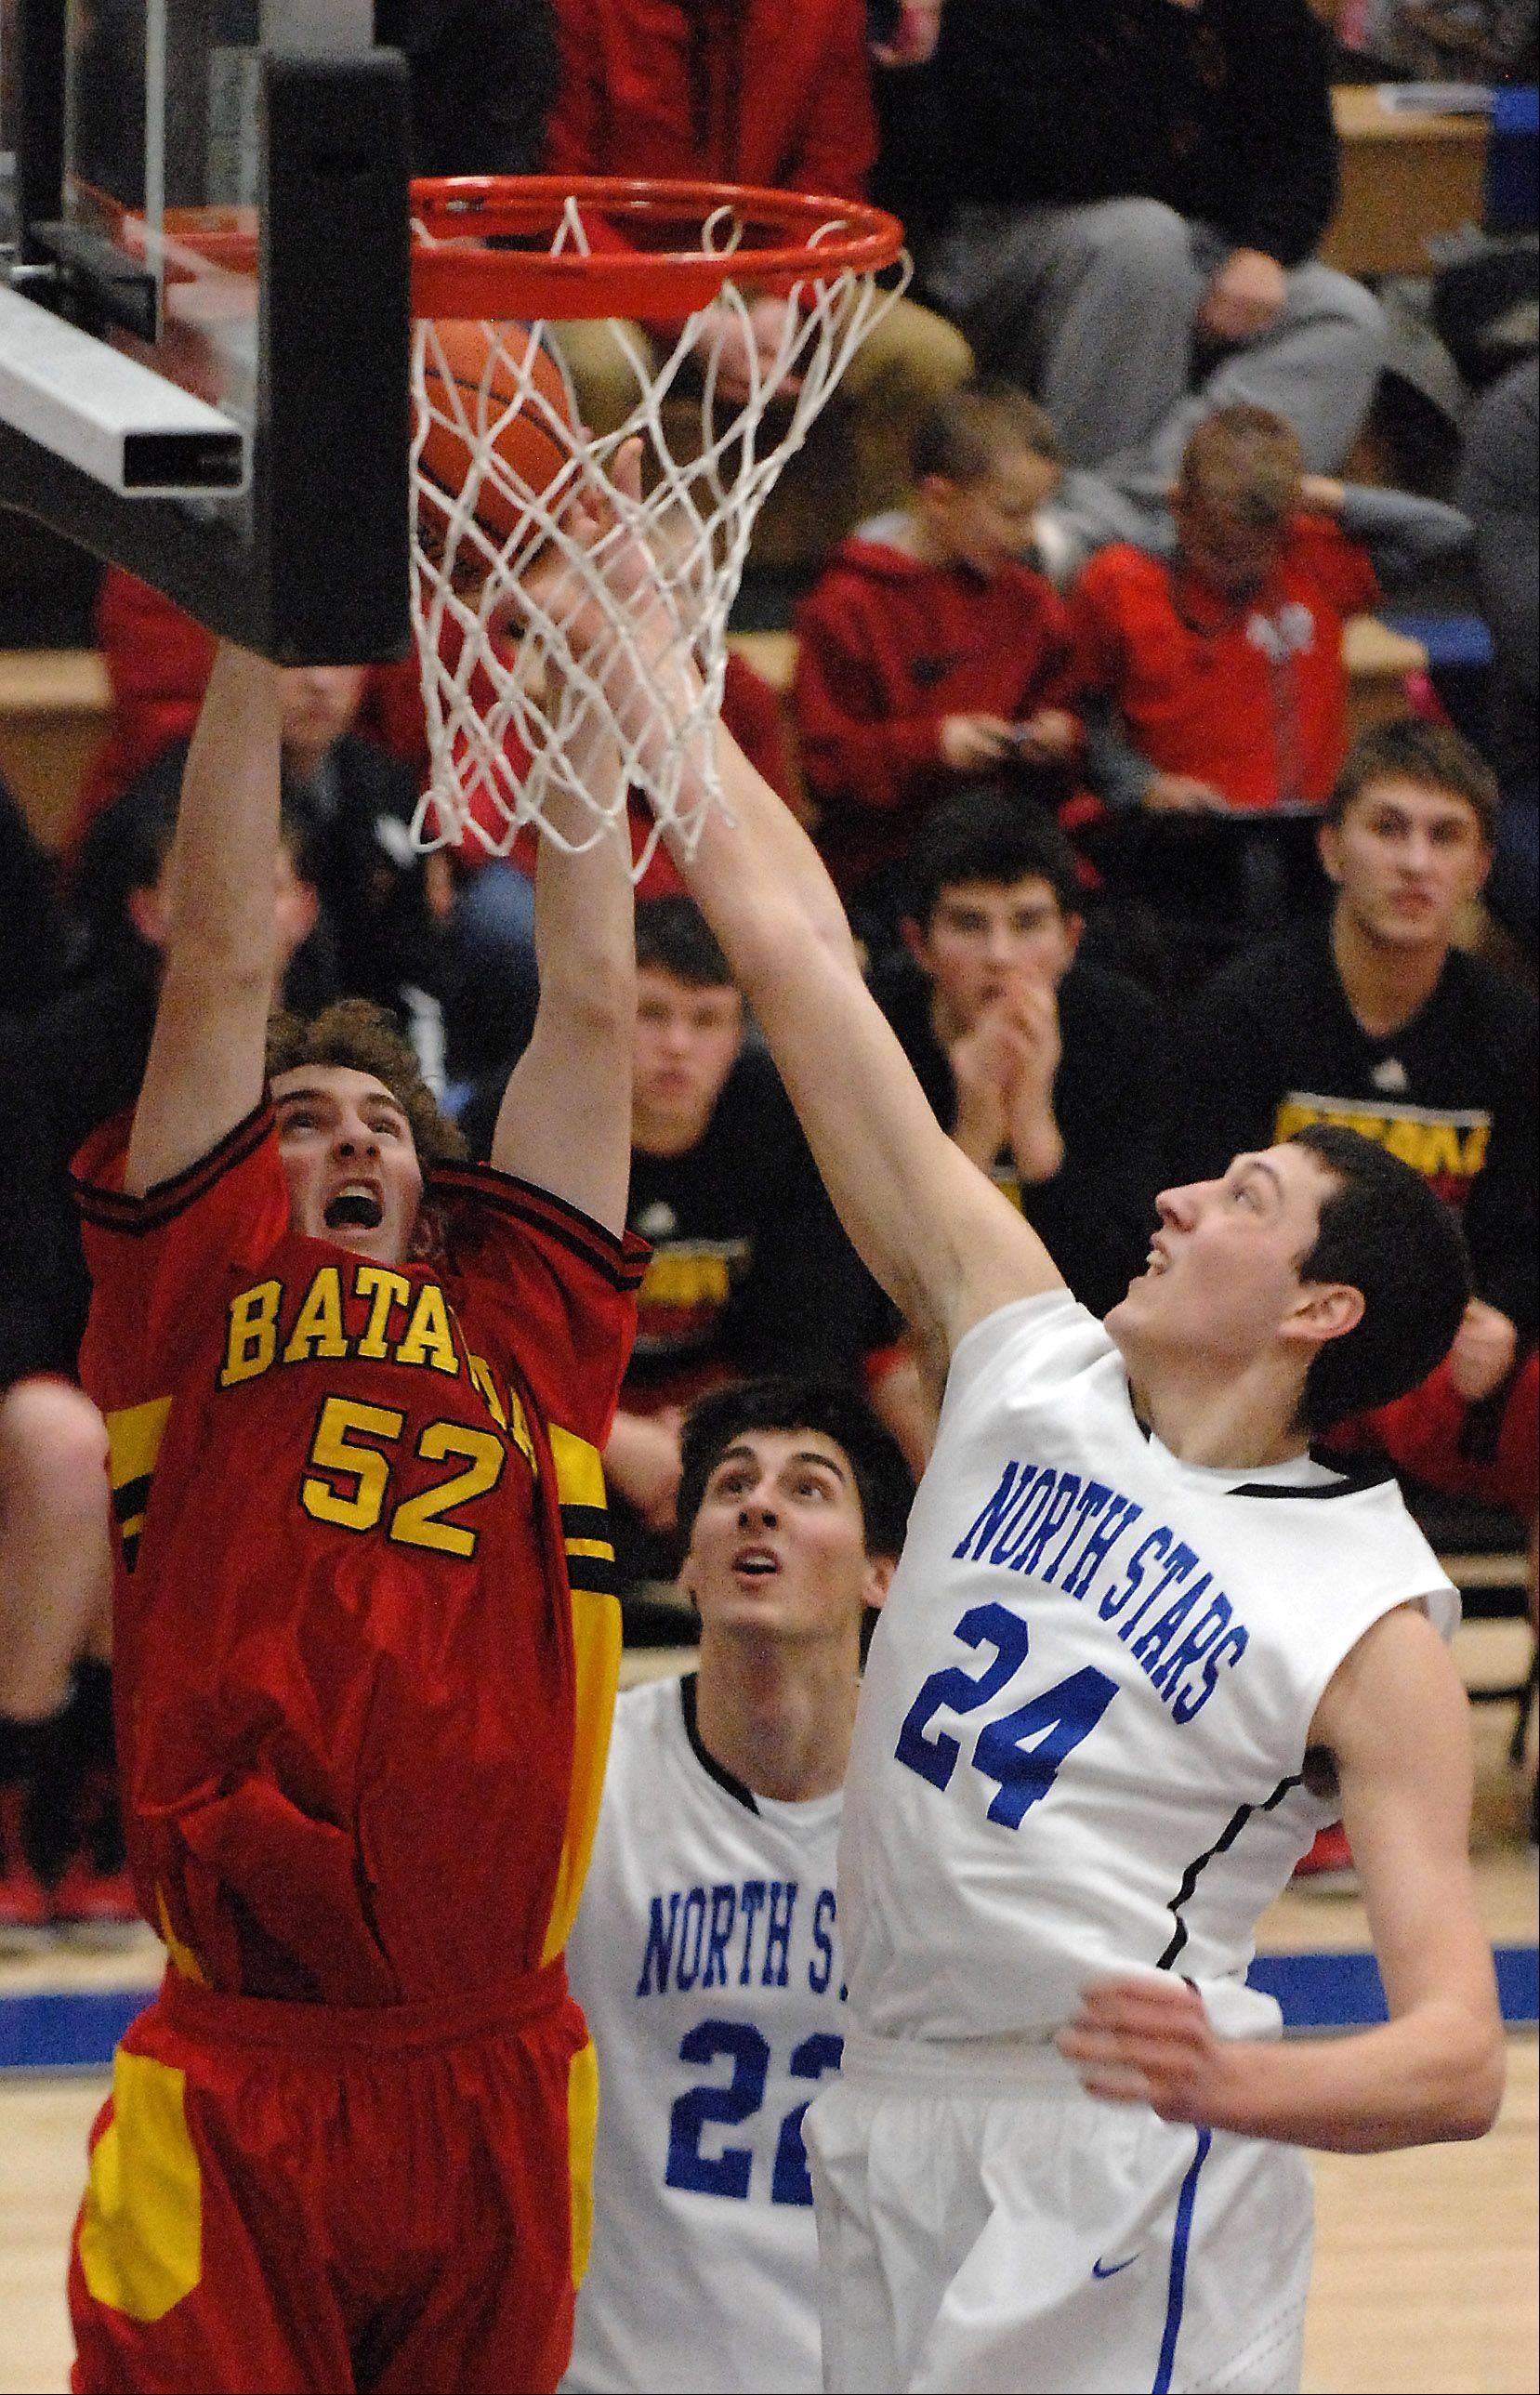 Batavia's Luke Horton and St. Charles North's Chris Preocanin battle for a rebound.